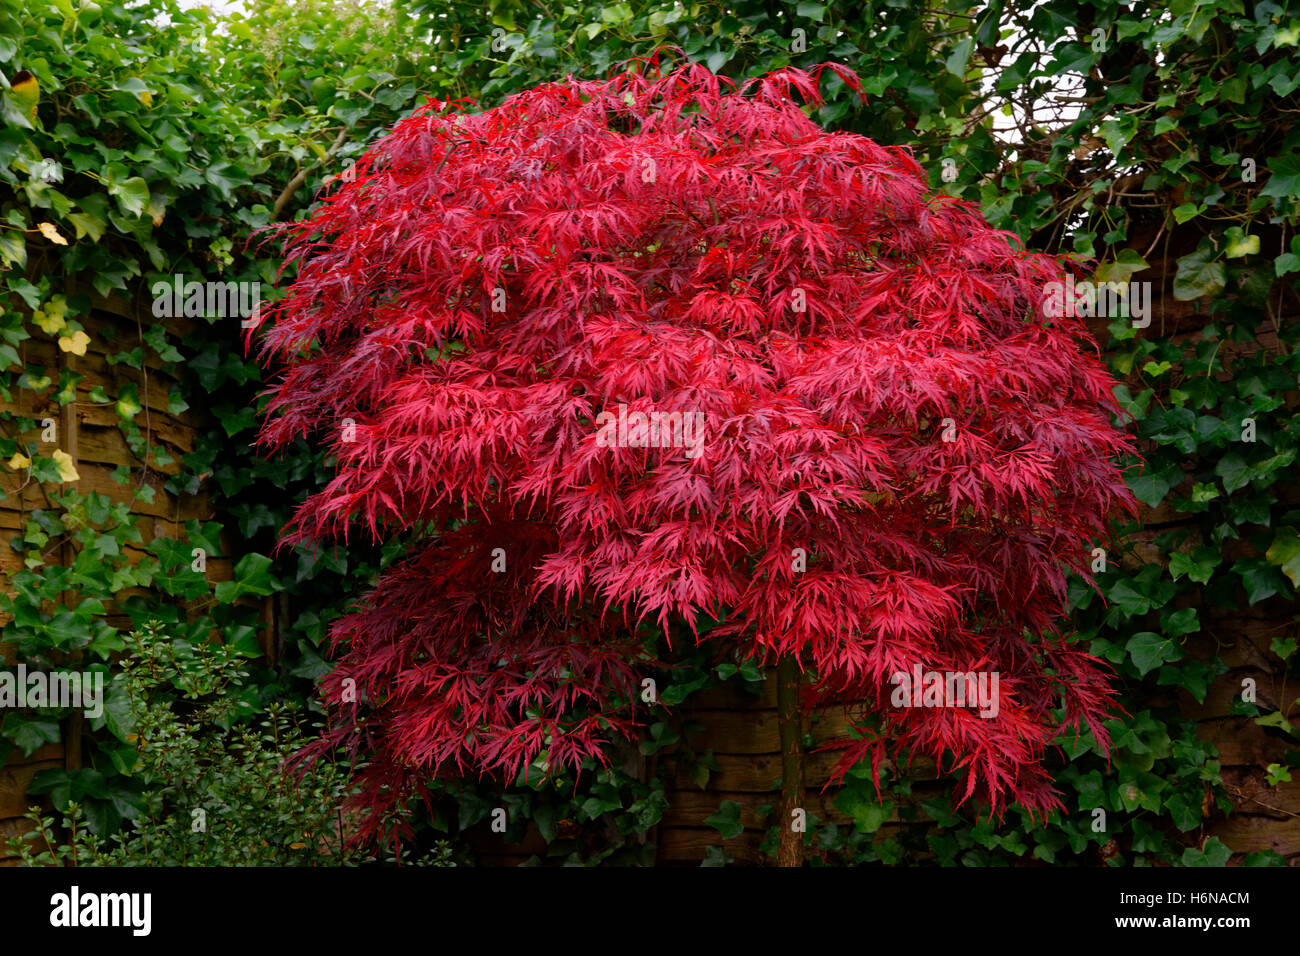 Japanese Maple Acer Palmatum Tree In Early Autumn Prior To Leaf